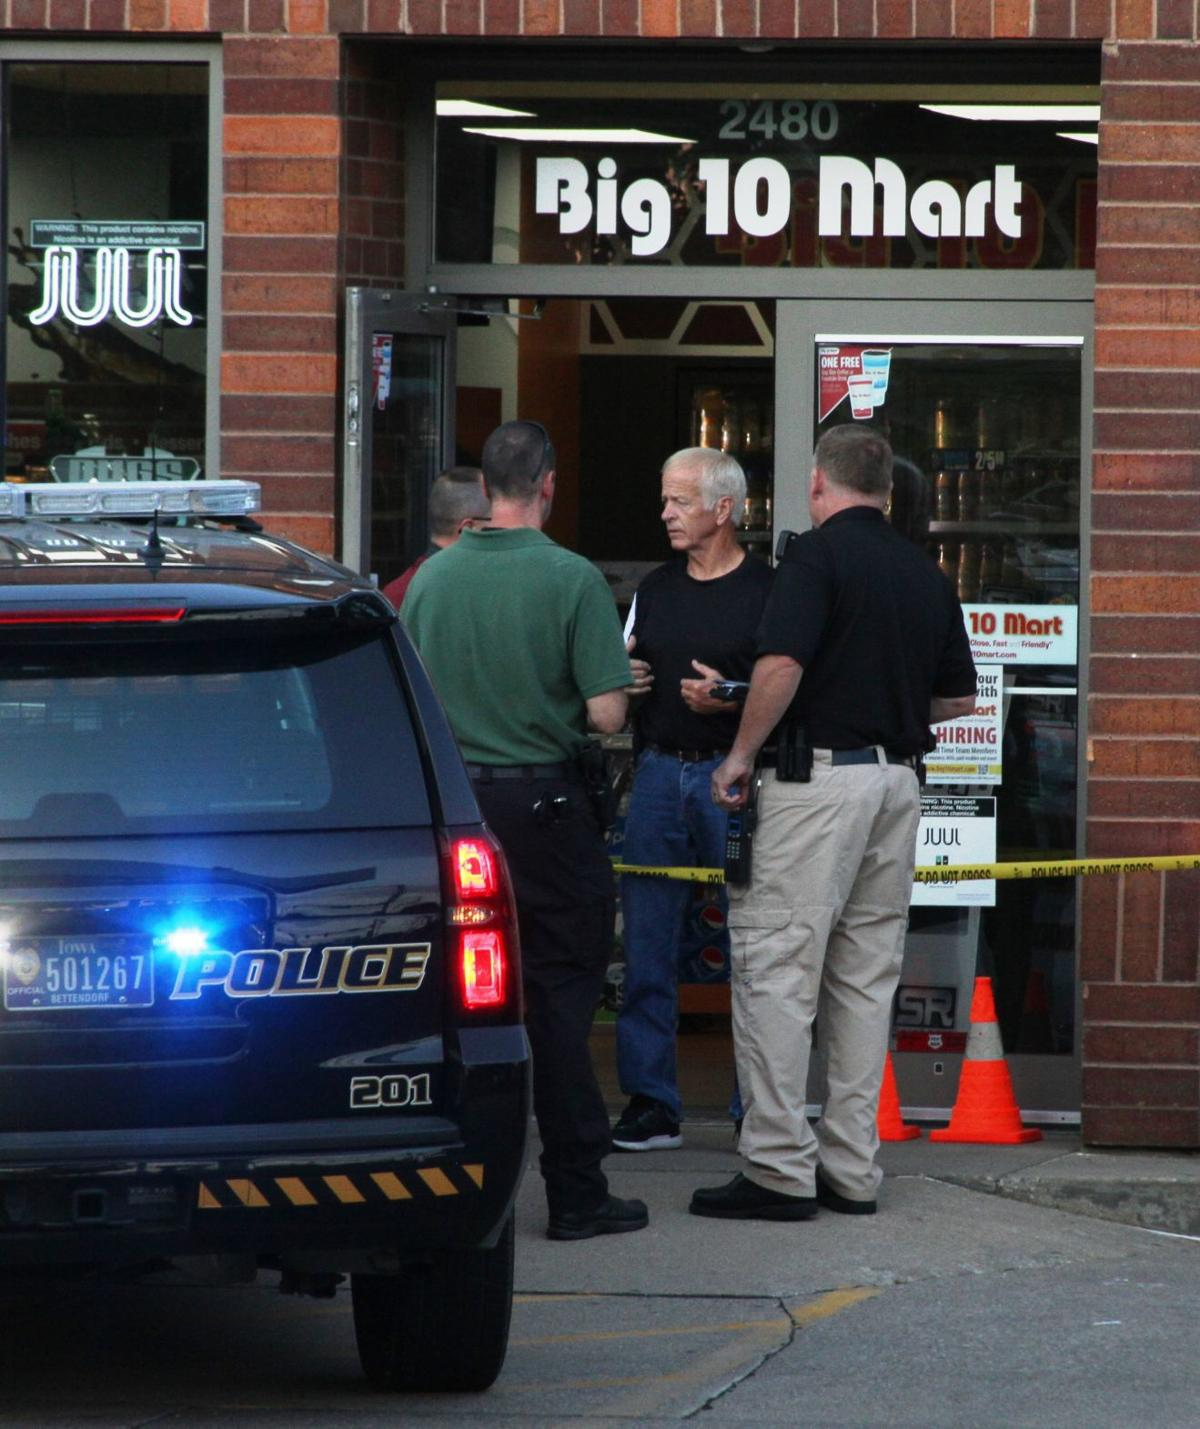 UPDATE: Police identify shooting victim at Bettendorf Big 10